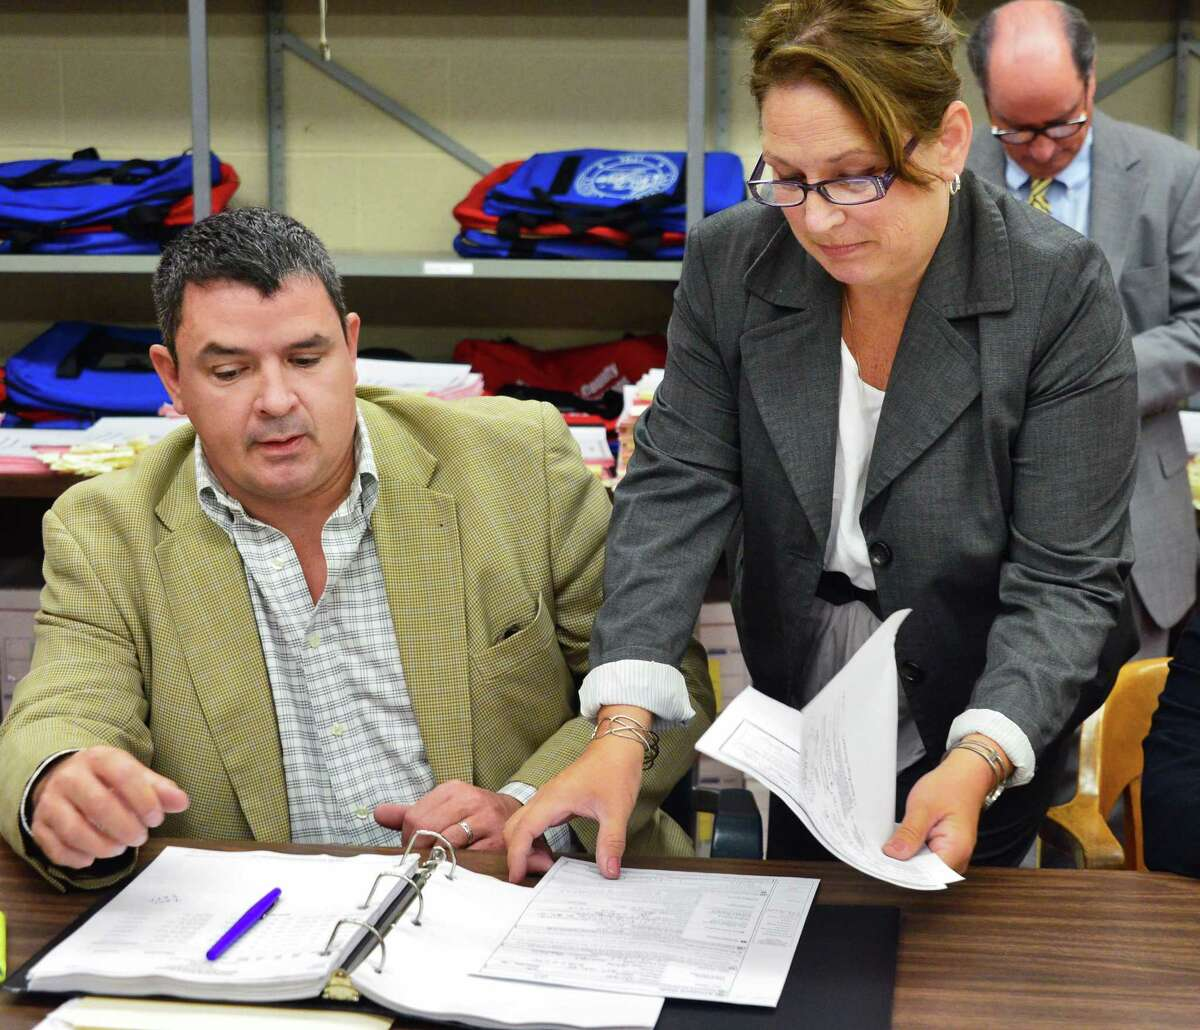 James Walsh, left, and Saratoga County Board of Elections clerk Donna Gunderson seen during a count of absentee ballots in September 2013 in Ballston Spa. Walsh in 2017 represented the town of Ballston in a lawsuit brought by the state Department of Agriculture and Markets and is Ballston GOP chairman. Walsh said there is no conflict of interest. (John Carl D'Annibale / Times Union)